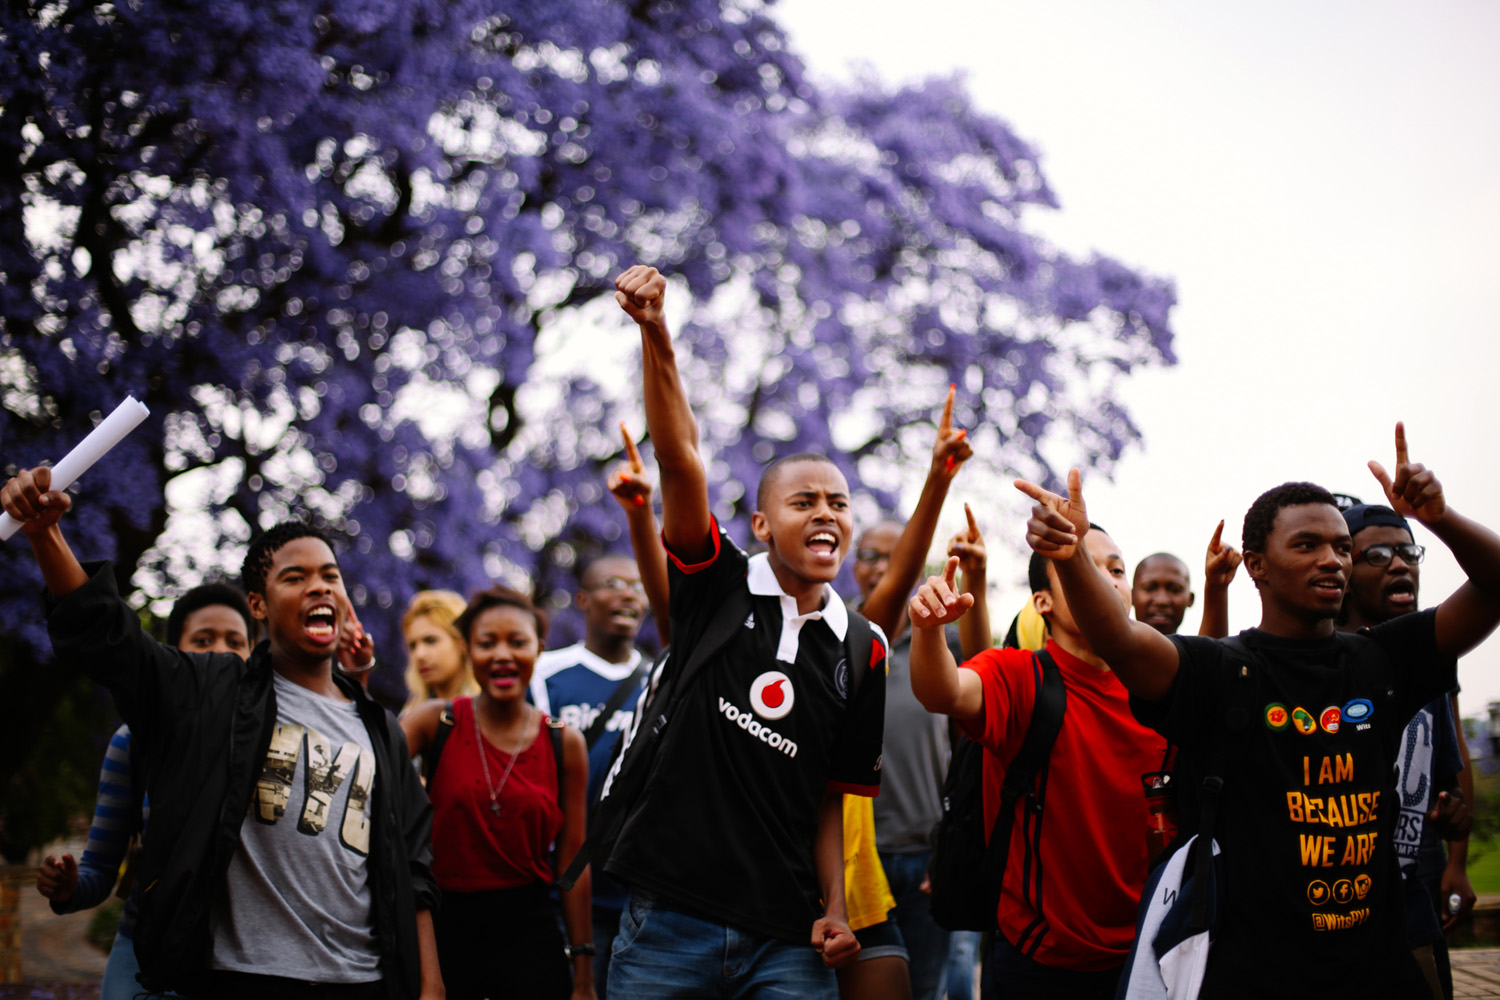 Postcolonial theory and the strong arm of identity